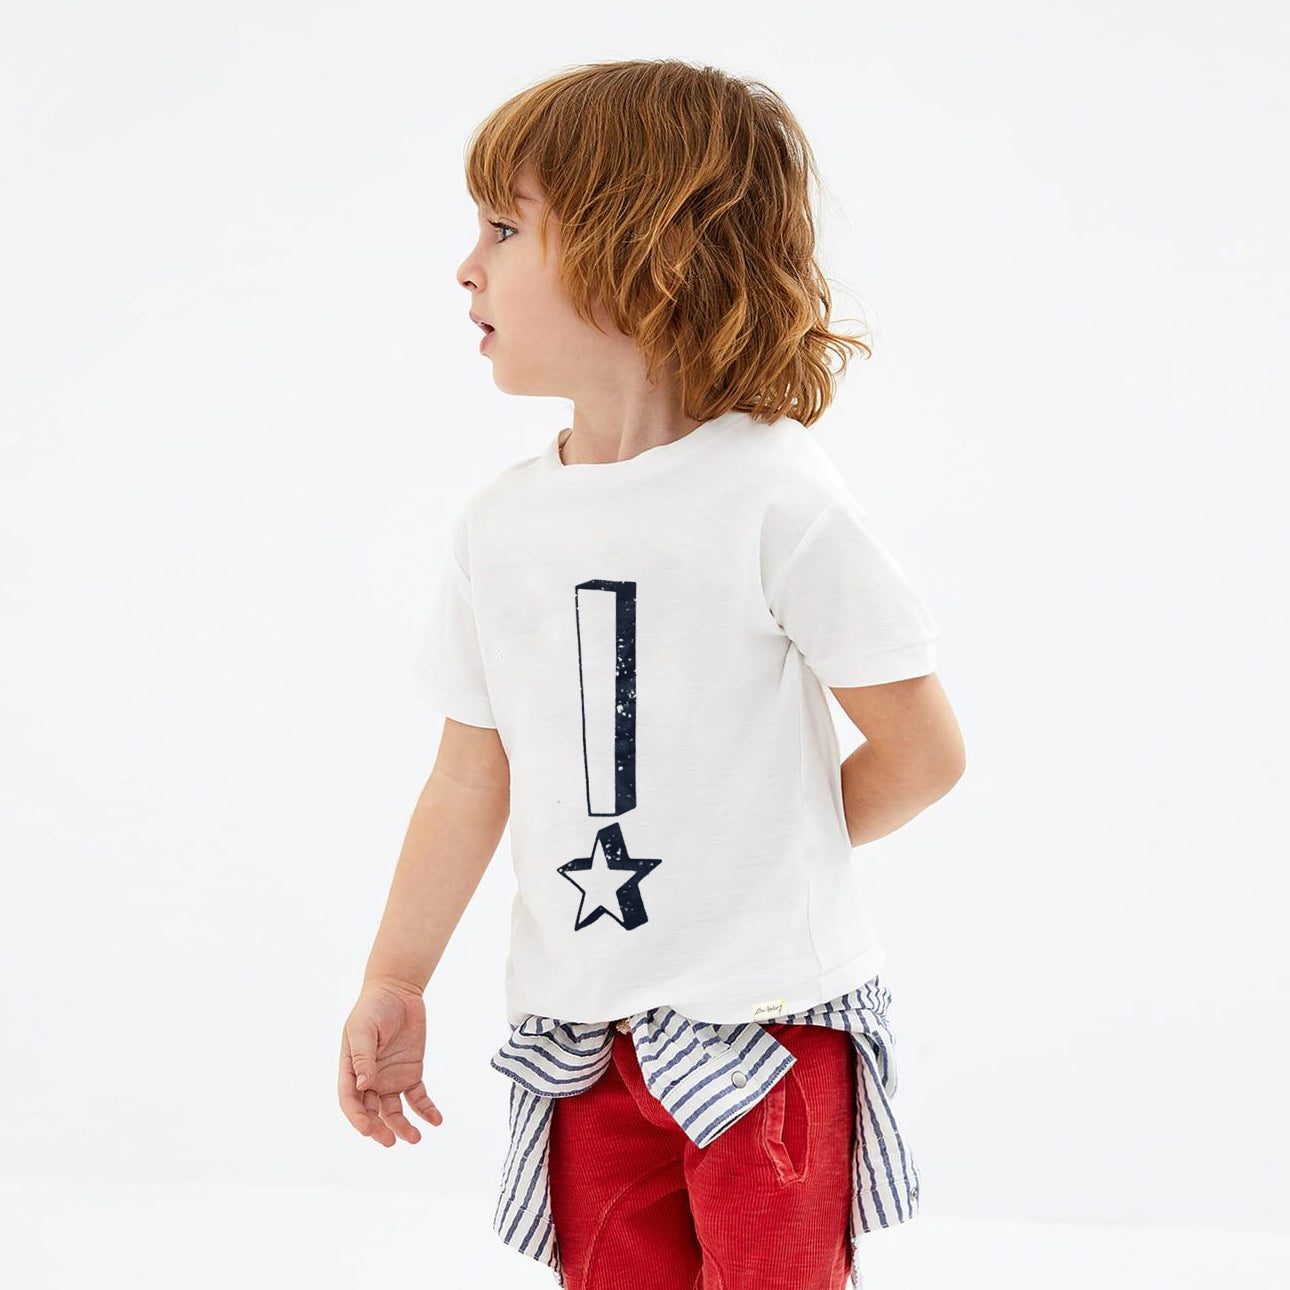 ZBaby Crew Neck Half Sleeve Tee Shirt-White-NA11032